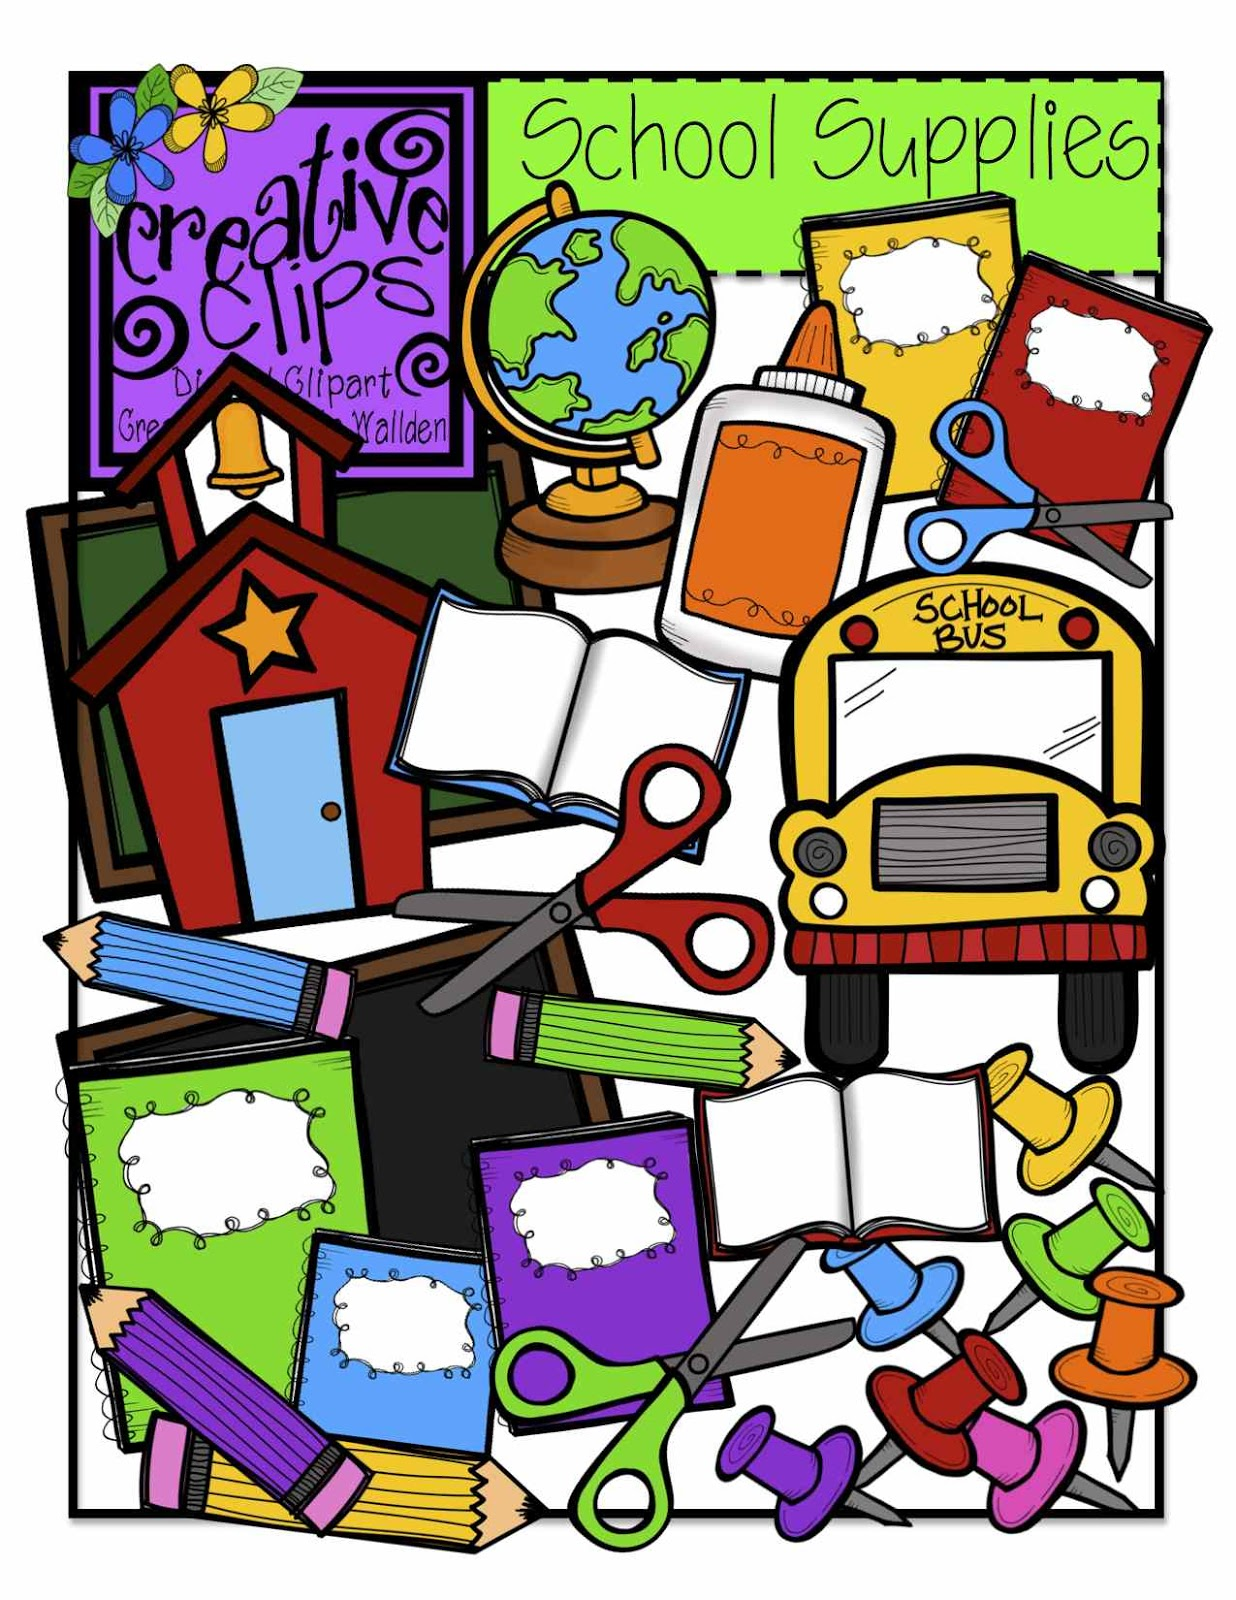 School supplies school supply giveaway clipart clipartfest